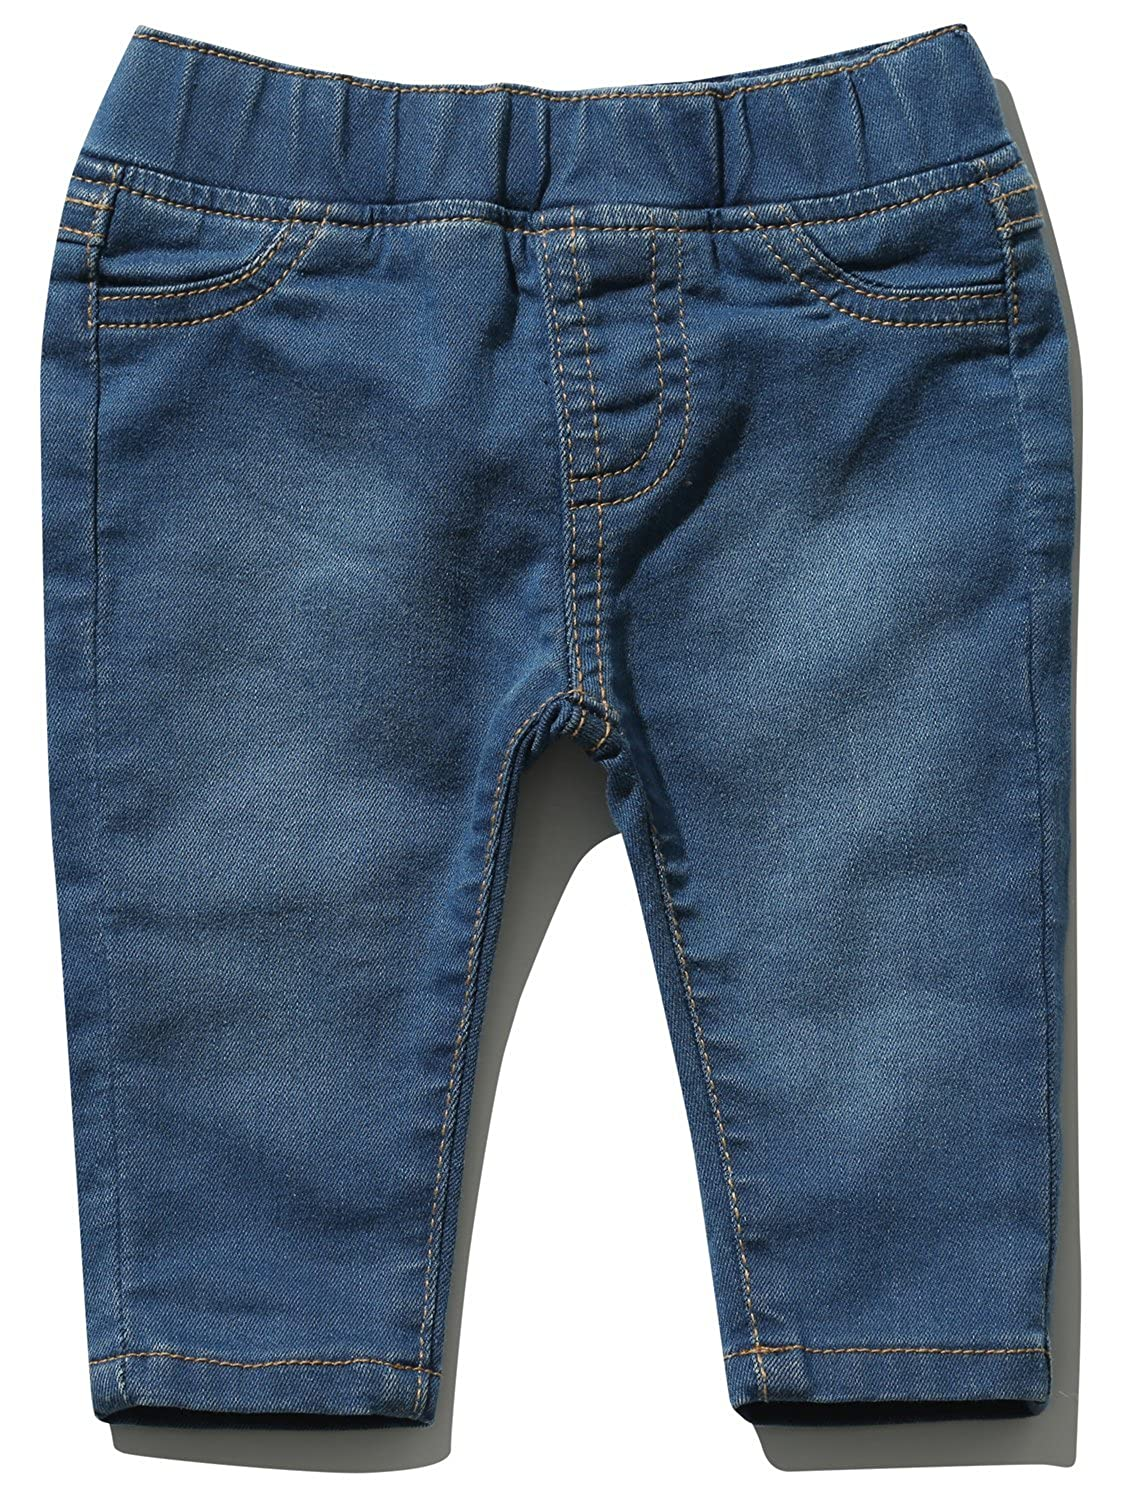 M&Co Baby Boy Cotton Stretch Blue Denim Stretch Waistband Full Length Jeggings